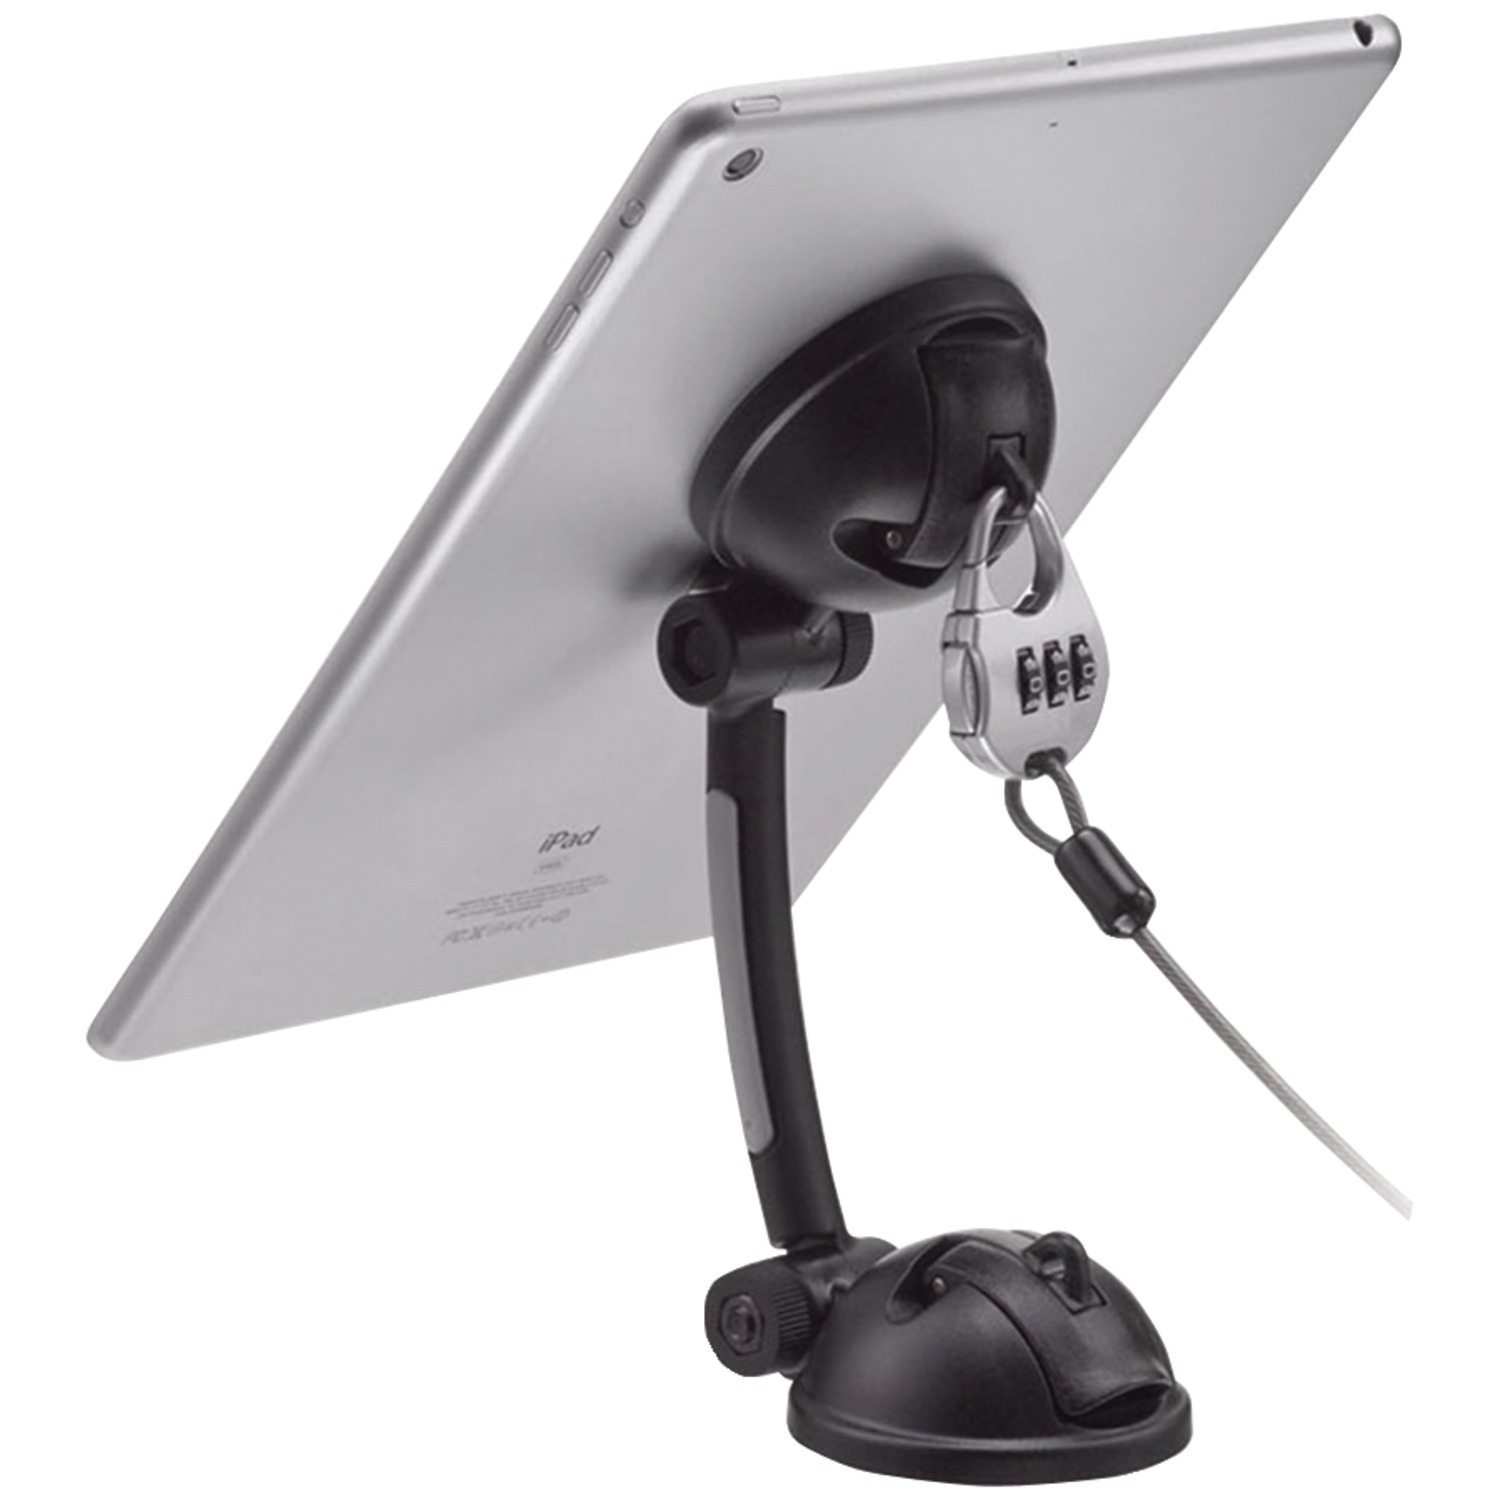 CTA Digital PAD-SMT Suction-Mount Stand with Theft-Deterrent Lock for Tablet/Smartphone